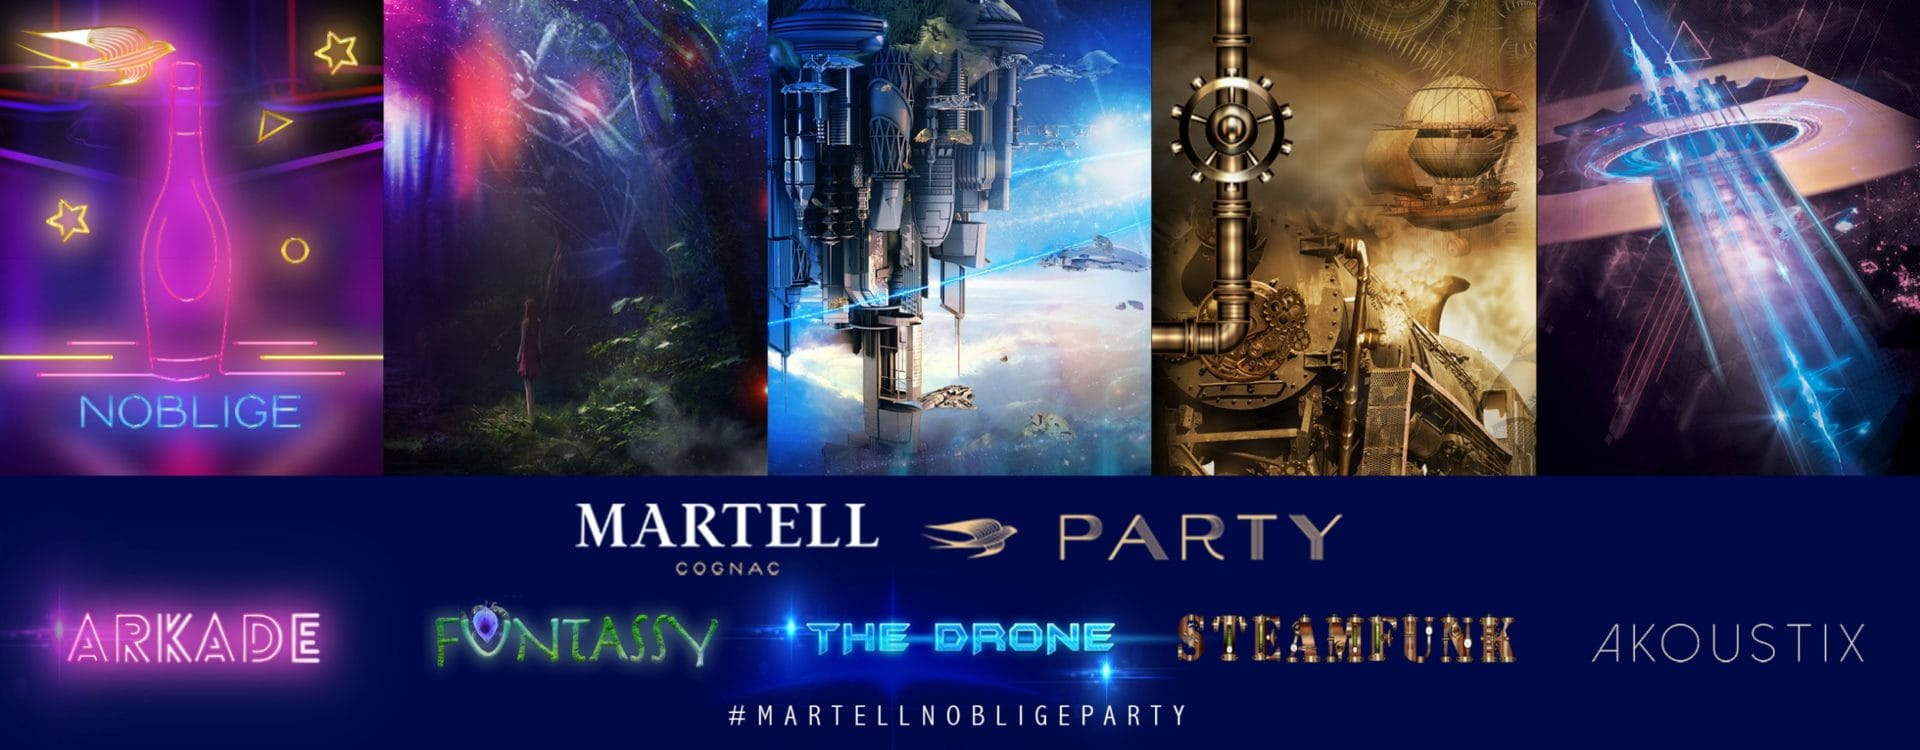 Martell Noblige Party